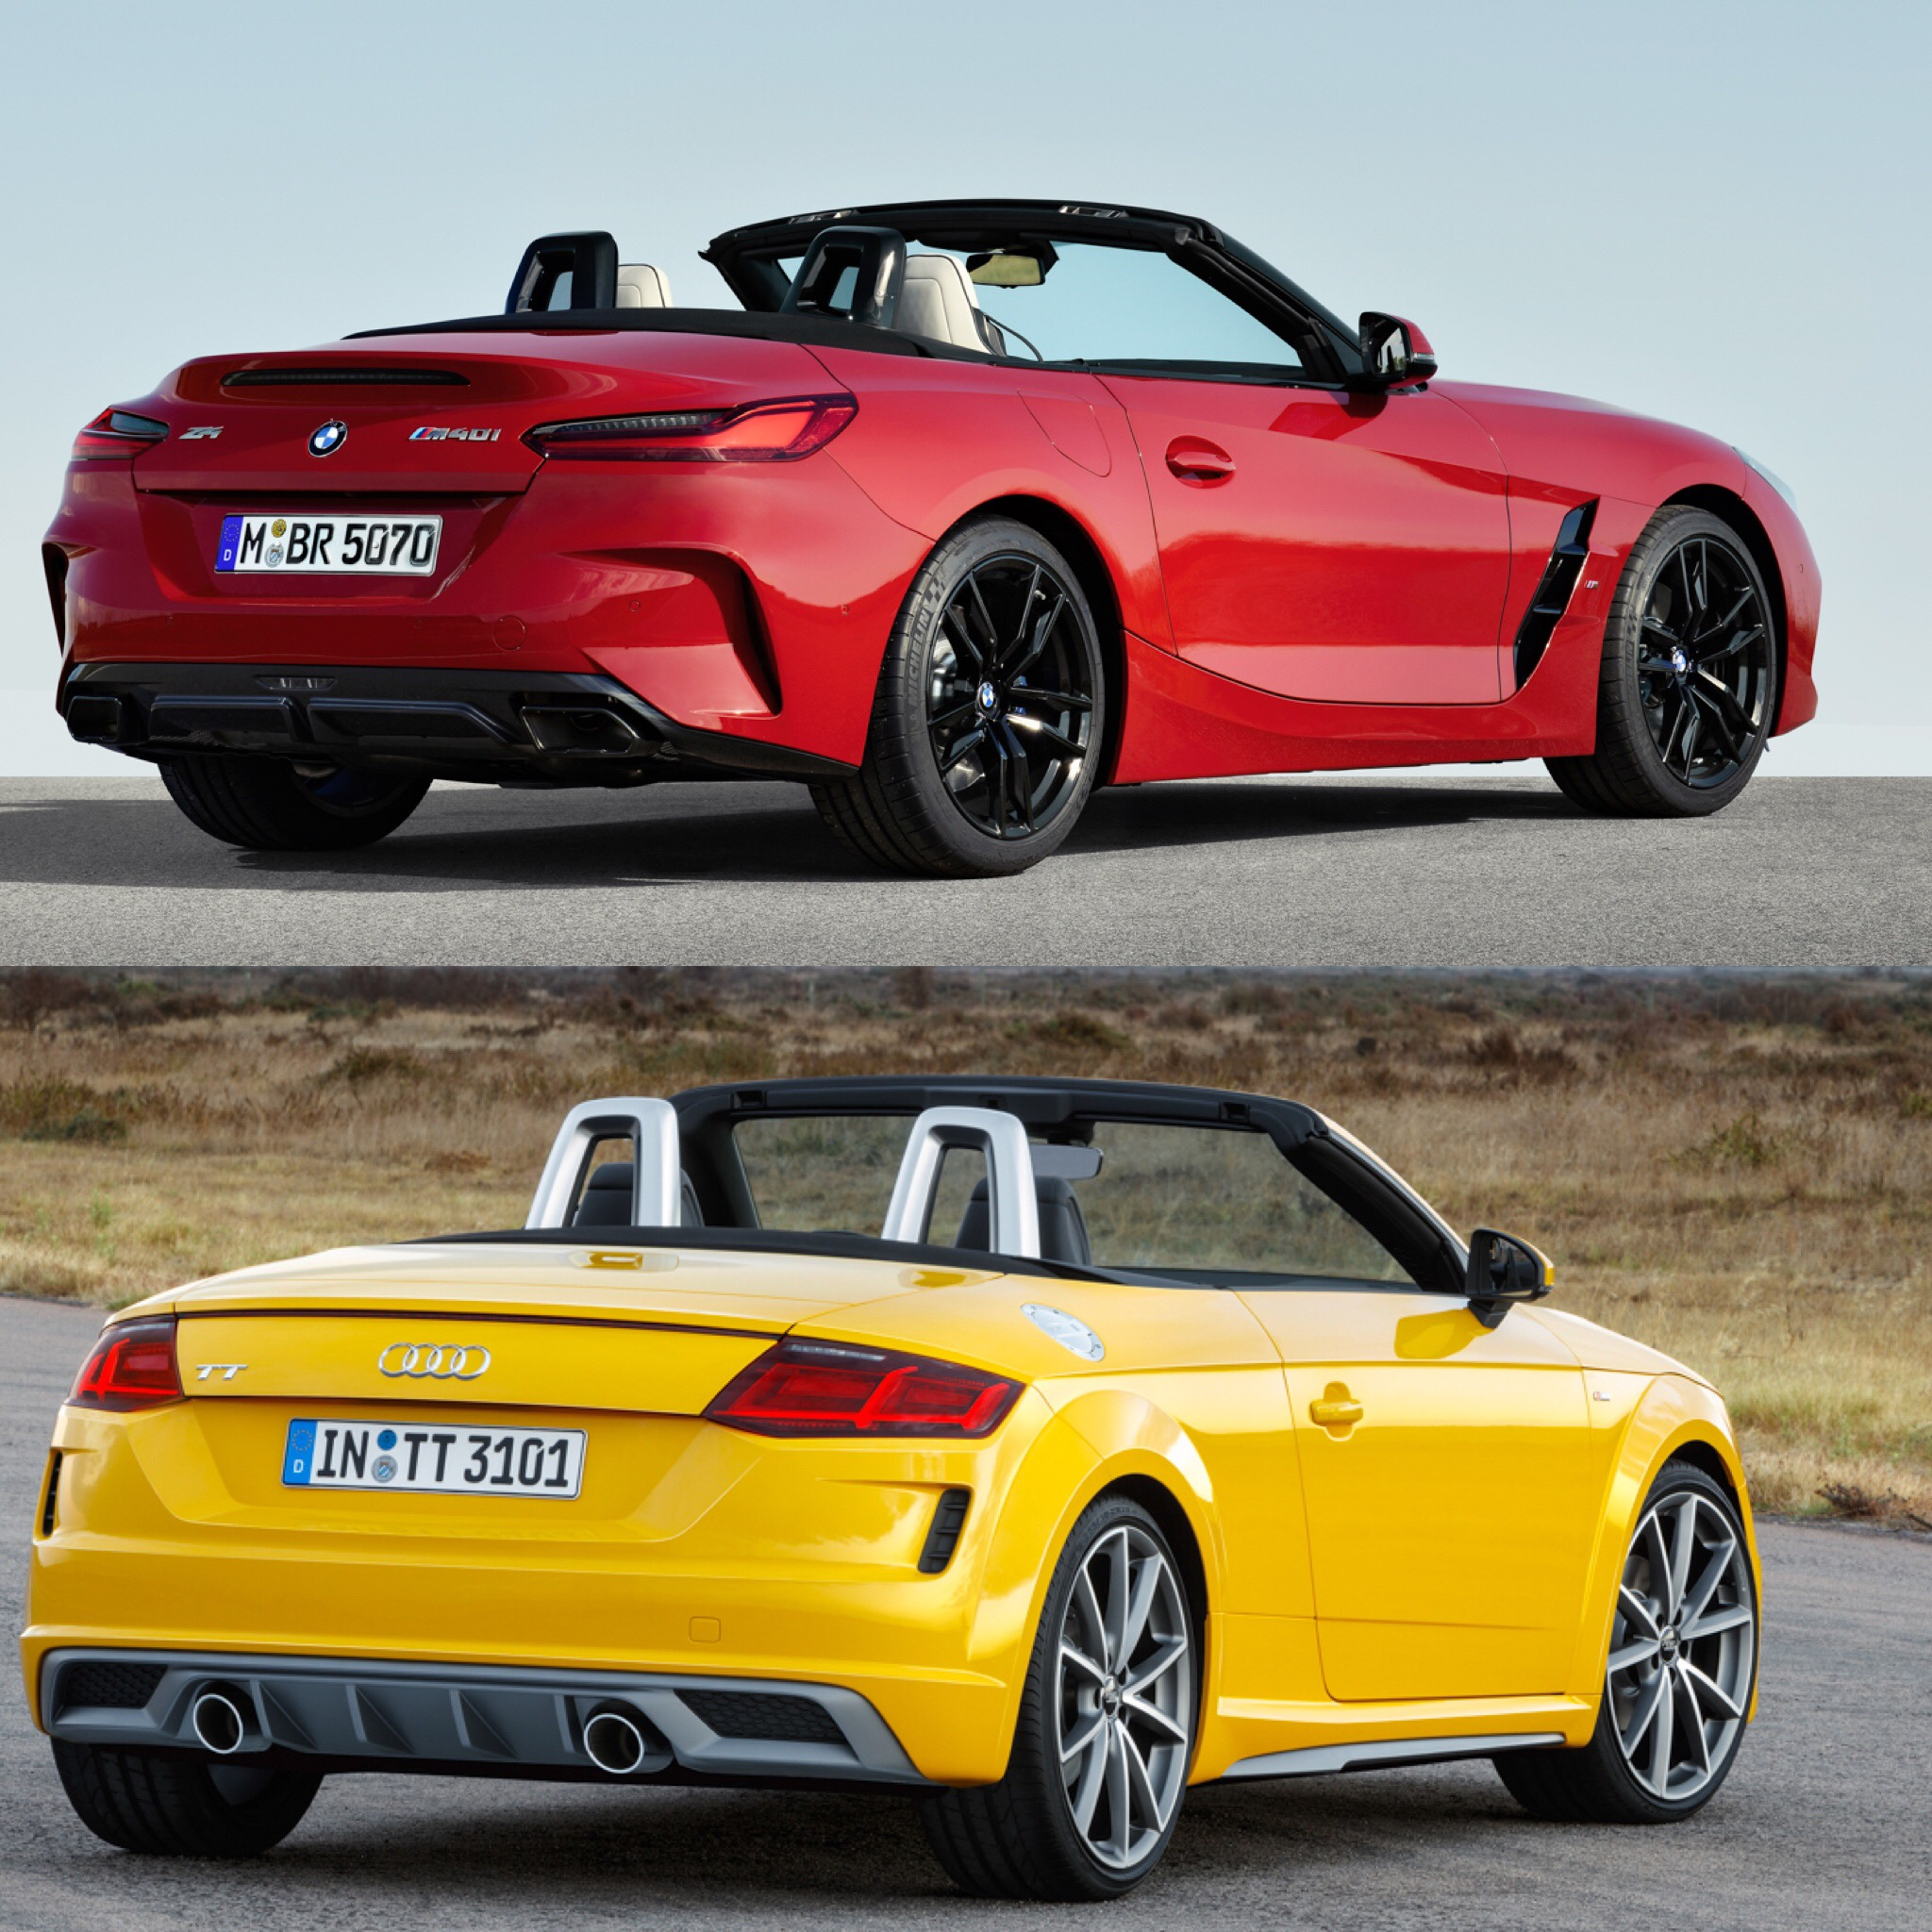 Bmw Z4 Convertible Sports Car: Photo Comparison: BMW Z4 M40i Vs Audi TT Roadster